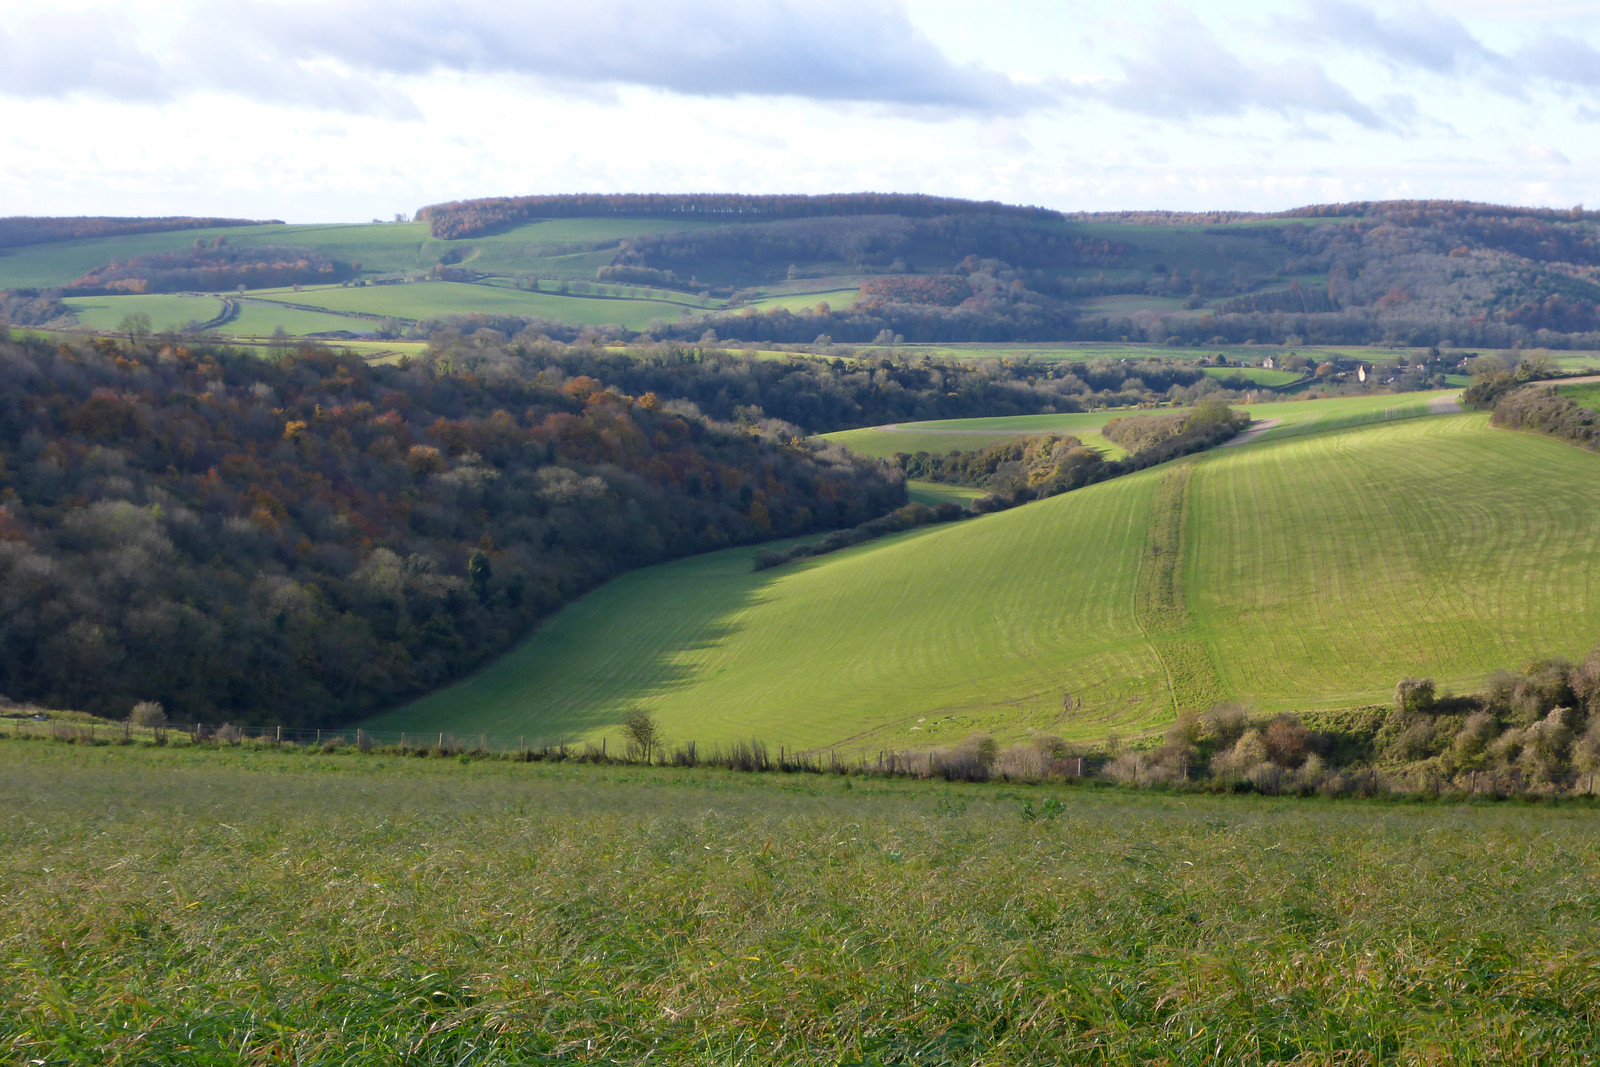 The South Downs near Amberley